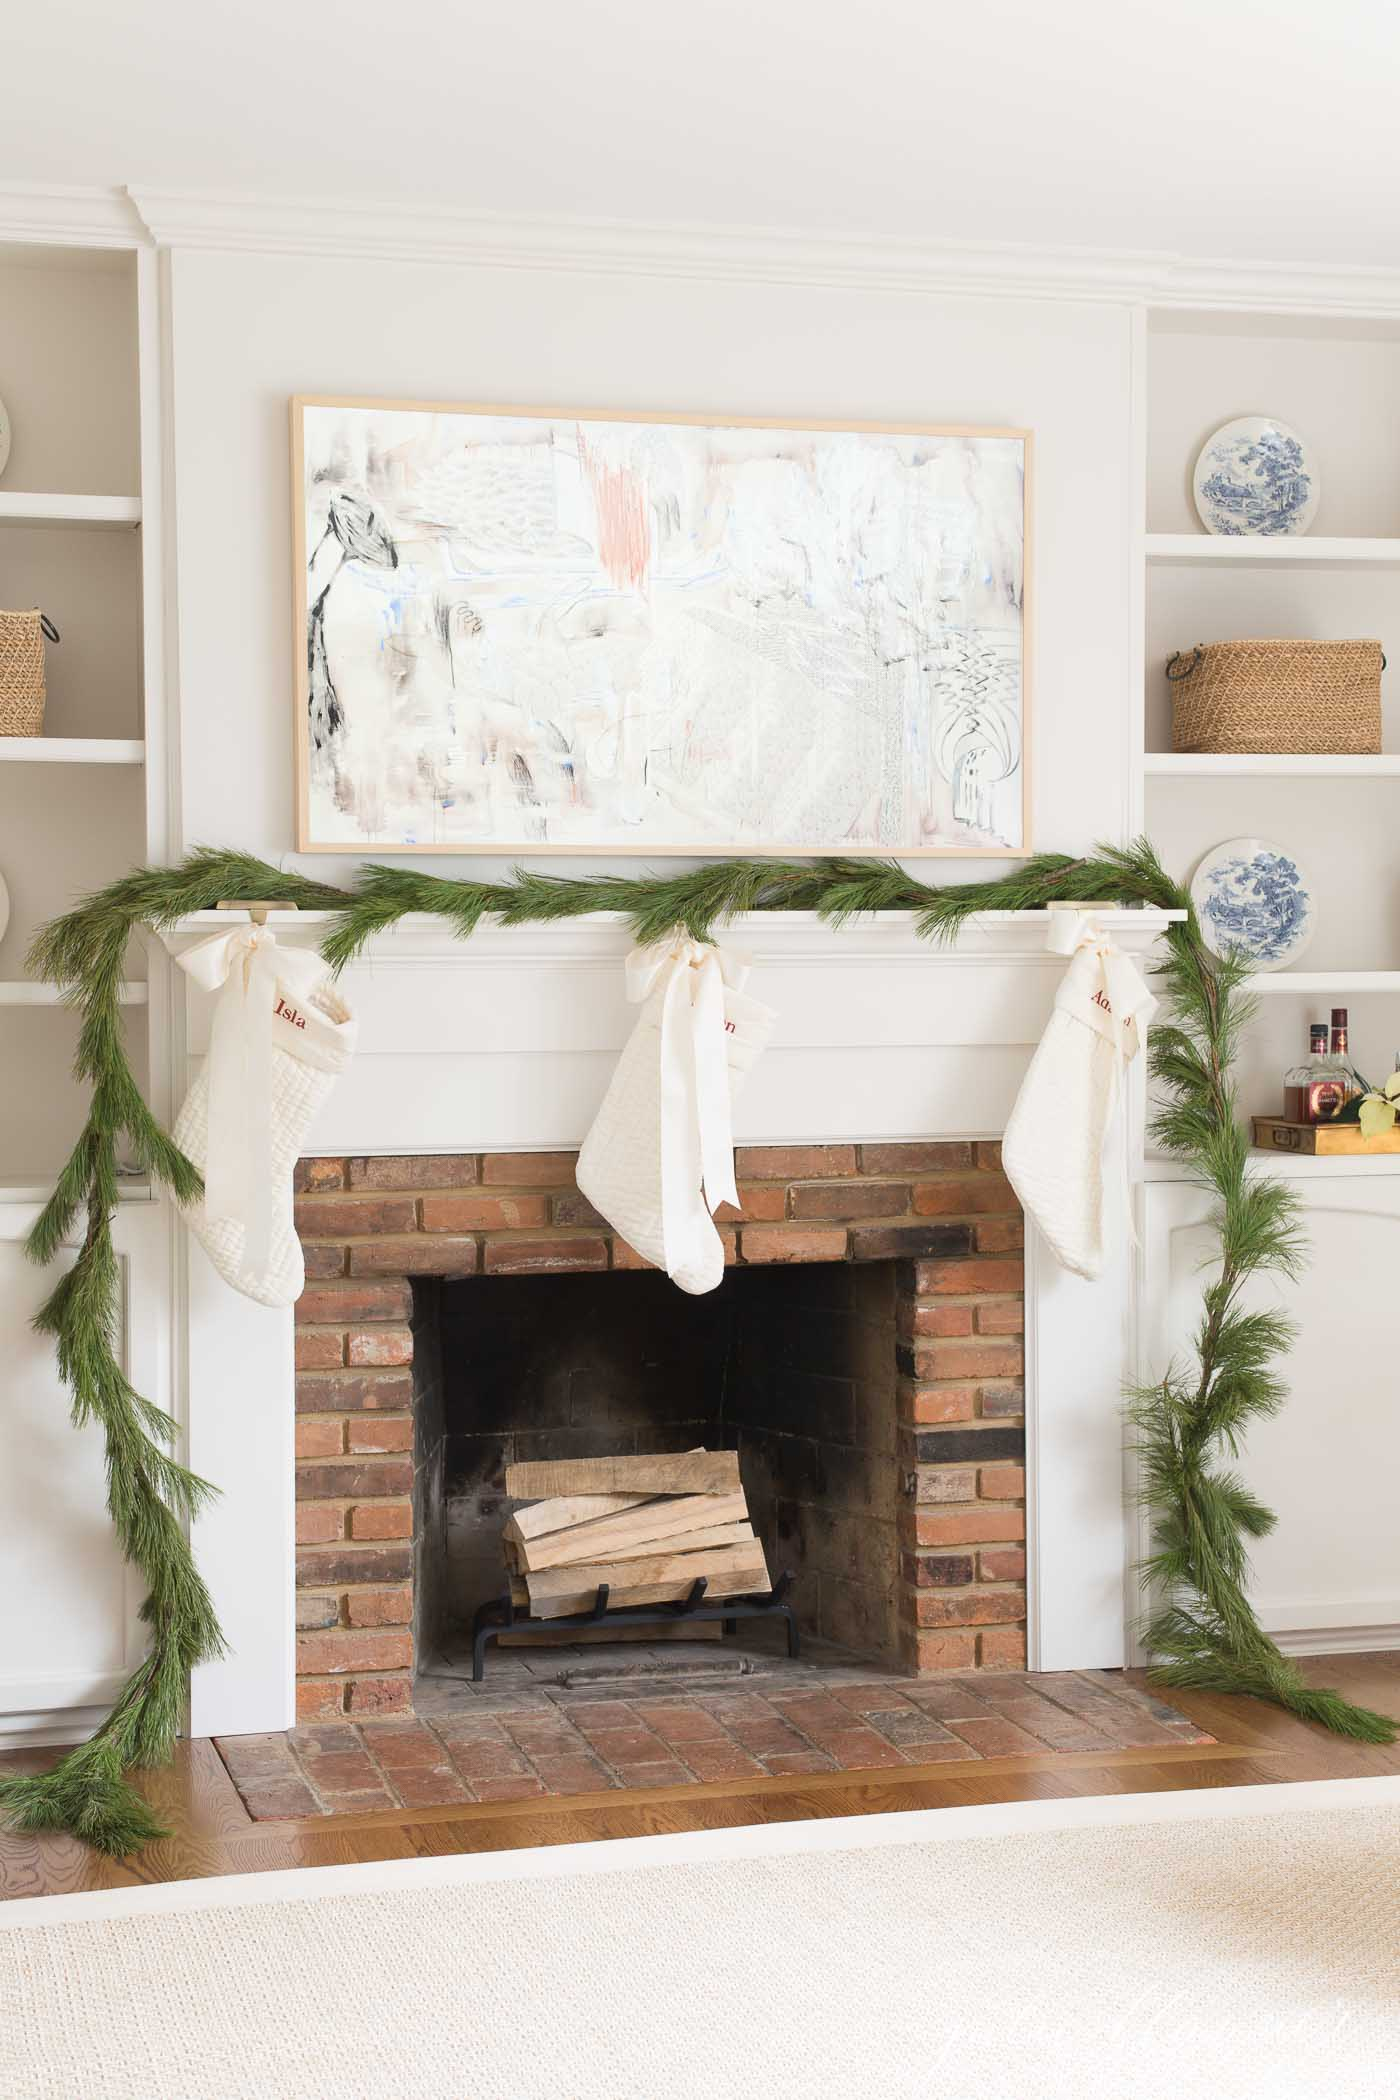 A living room fireplace with a fresh greenery garland and a Frame Tv hanging over the mantle.